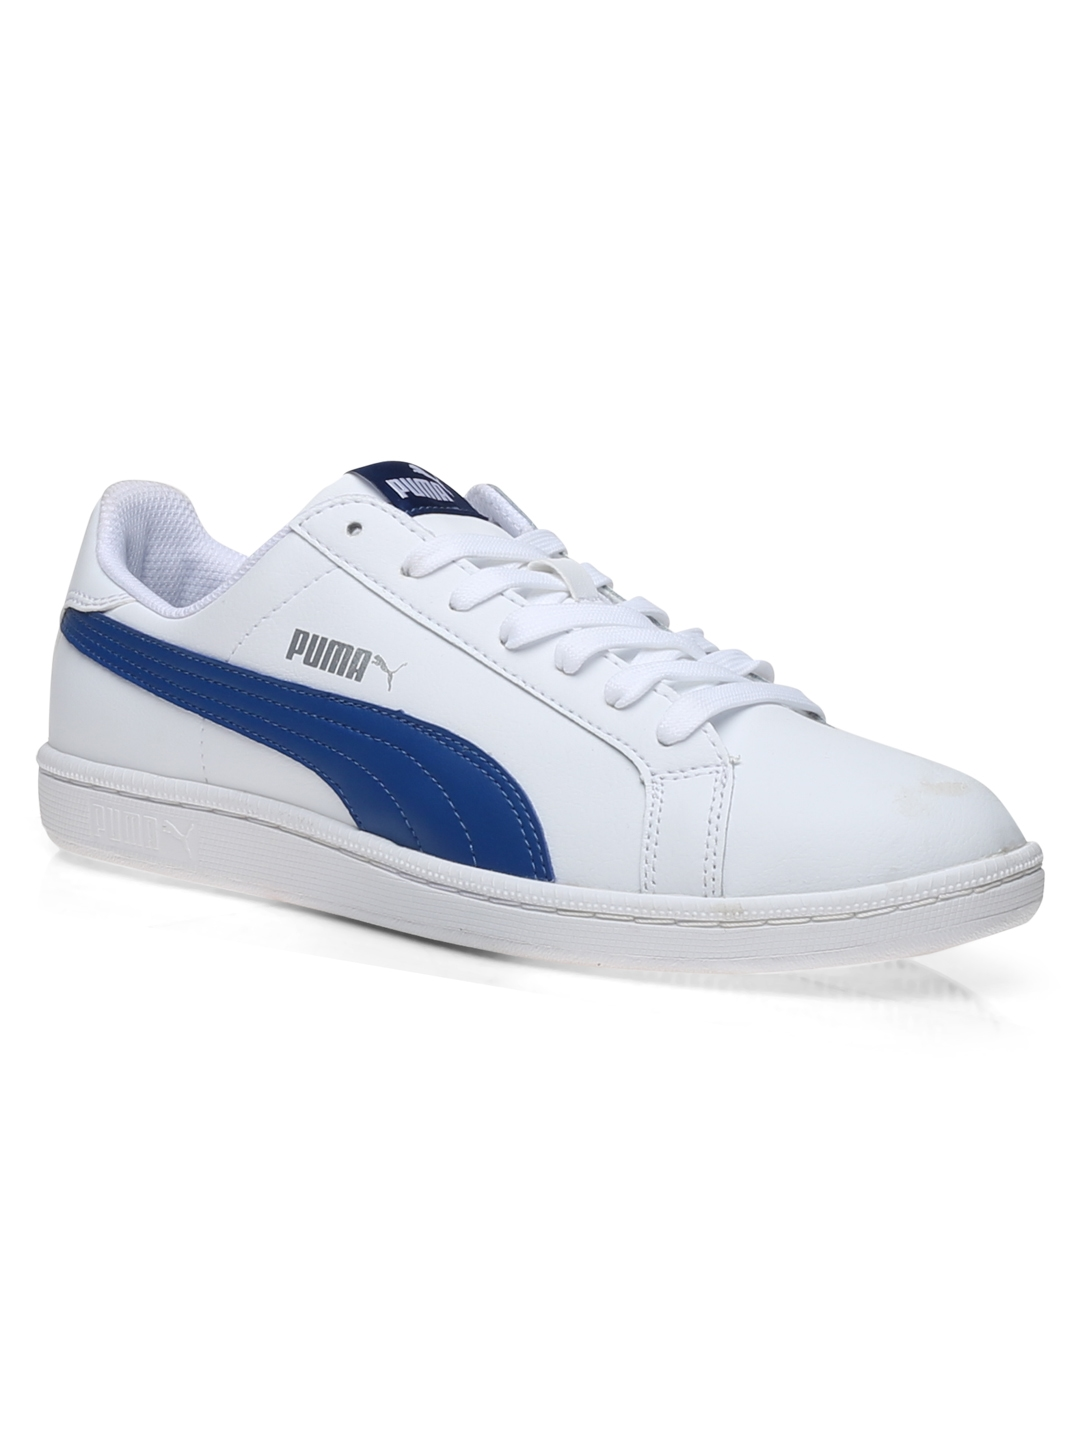 2fb1f1ea42e0 Buy Puma Men White   Blue Sneakers - Casual Shoes for Men 1965580 ...